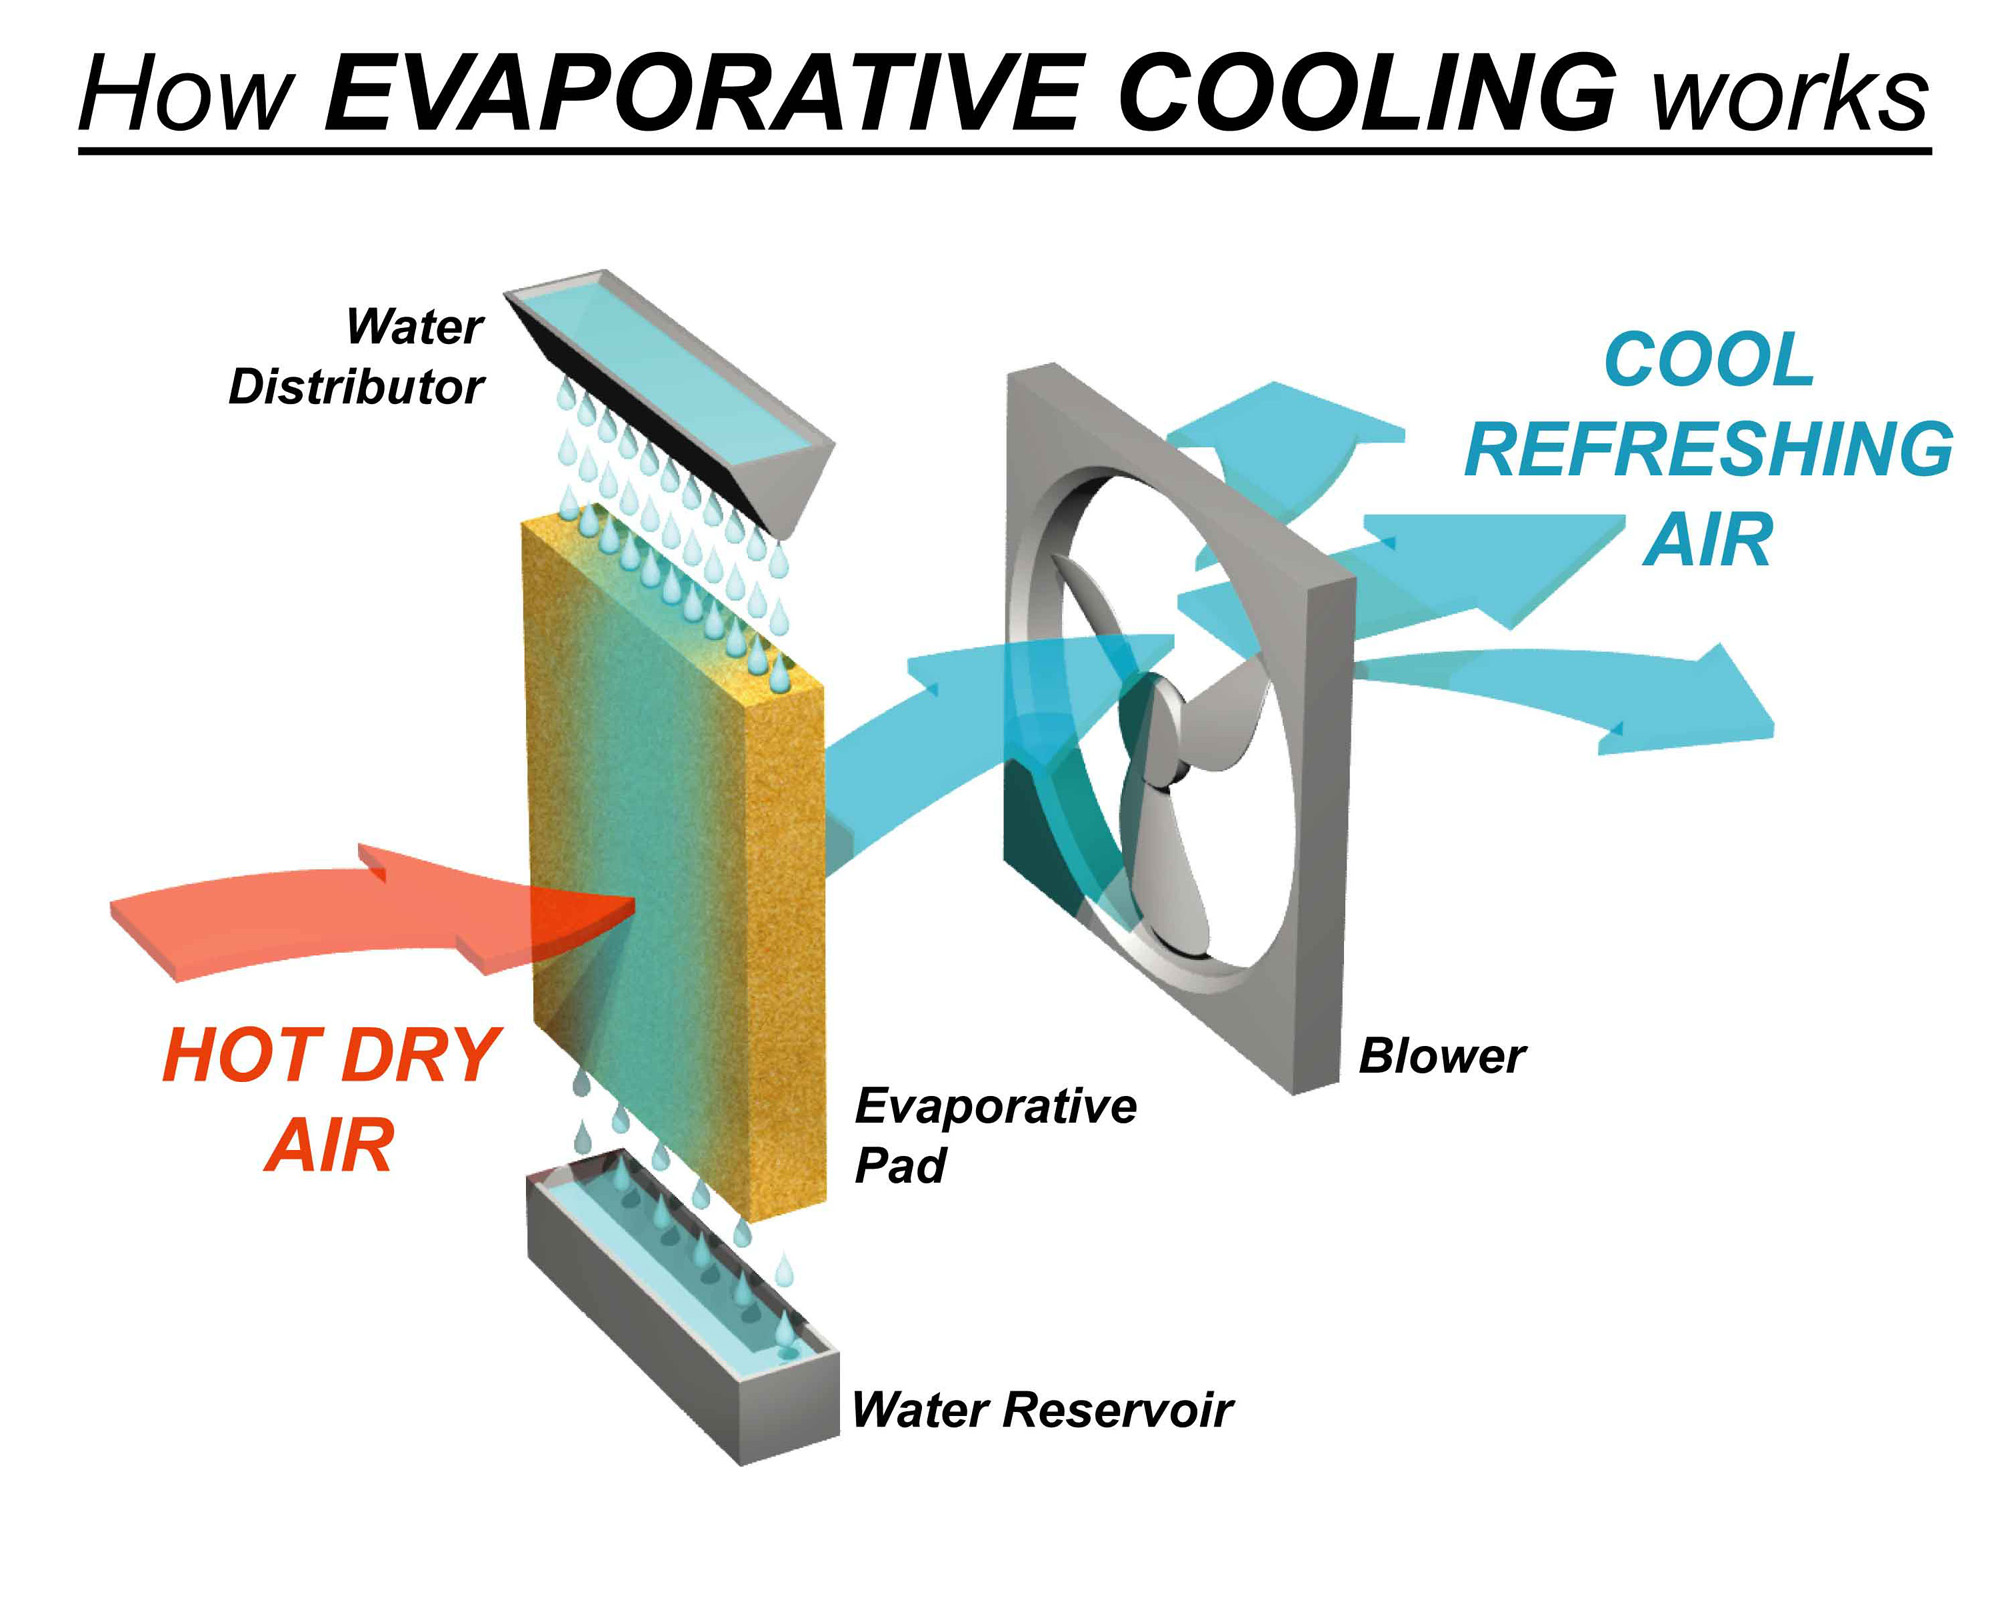 Ductless Systems besides Wall Split System furthermore Types Of Air Conditioner Units Must together with Art Cool Mini Splits further Maple Leaf Homes. on split cooling systems for homes